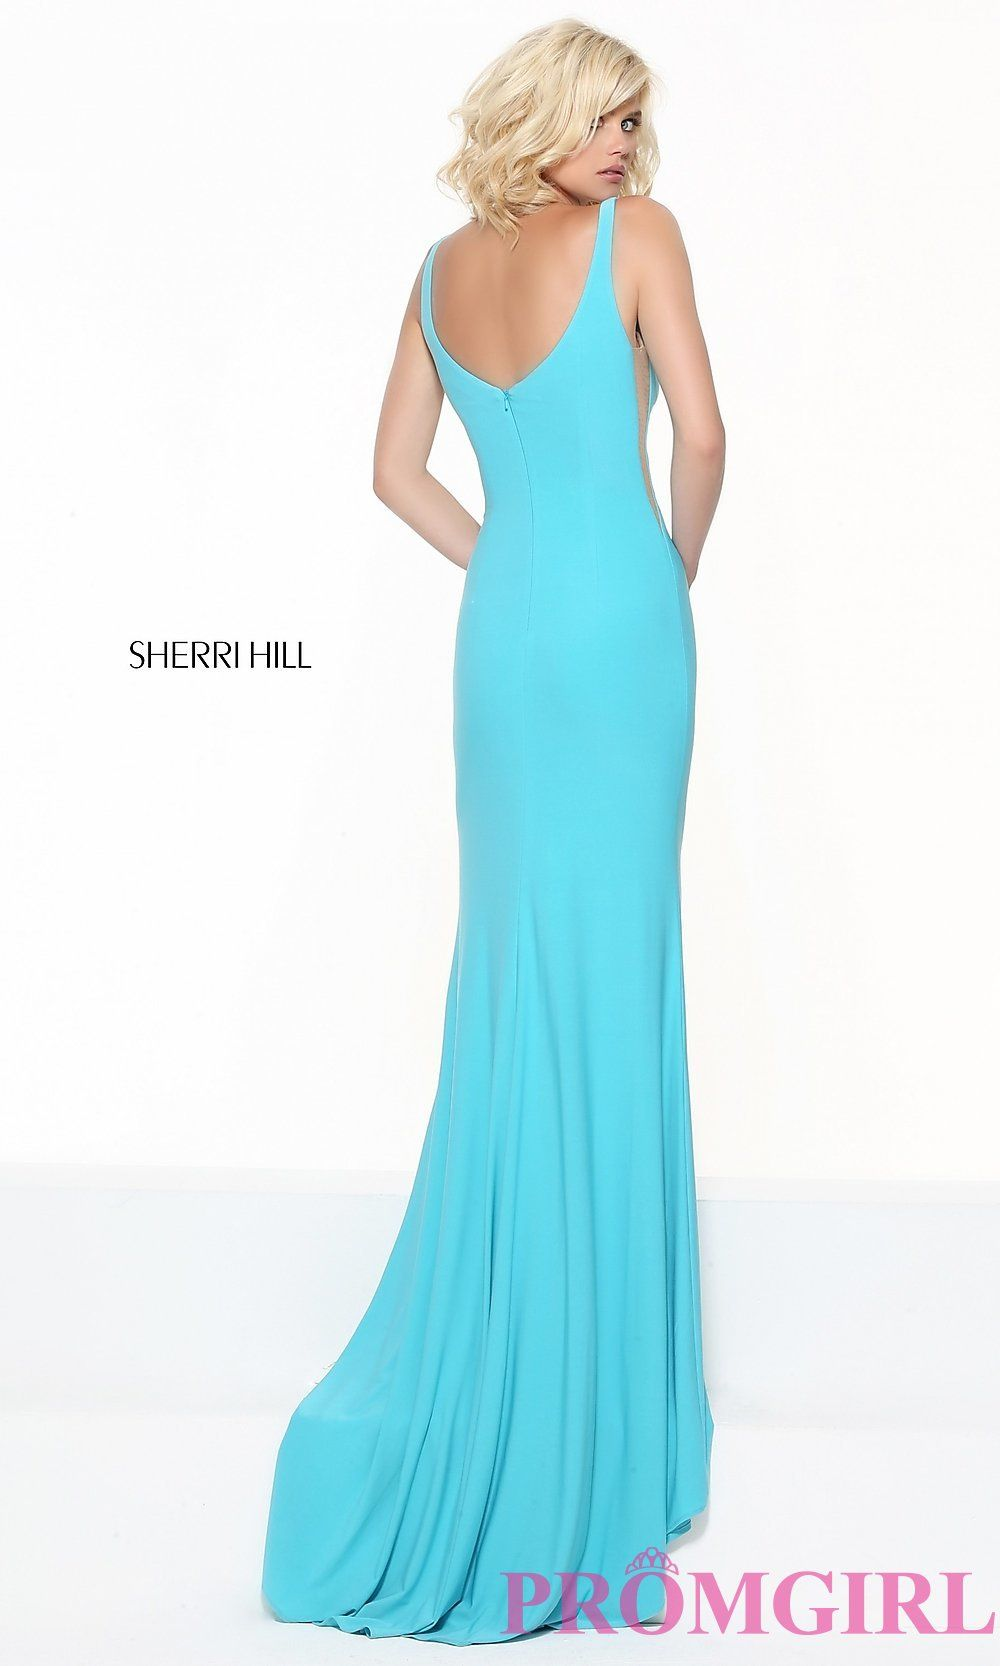 Image of Sherri Hill low v-neck prom dress with sheer panels ...